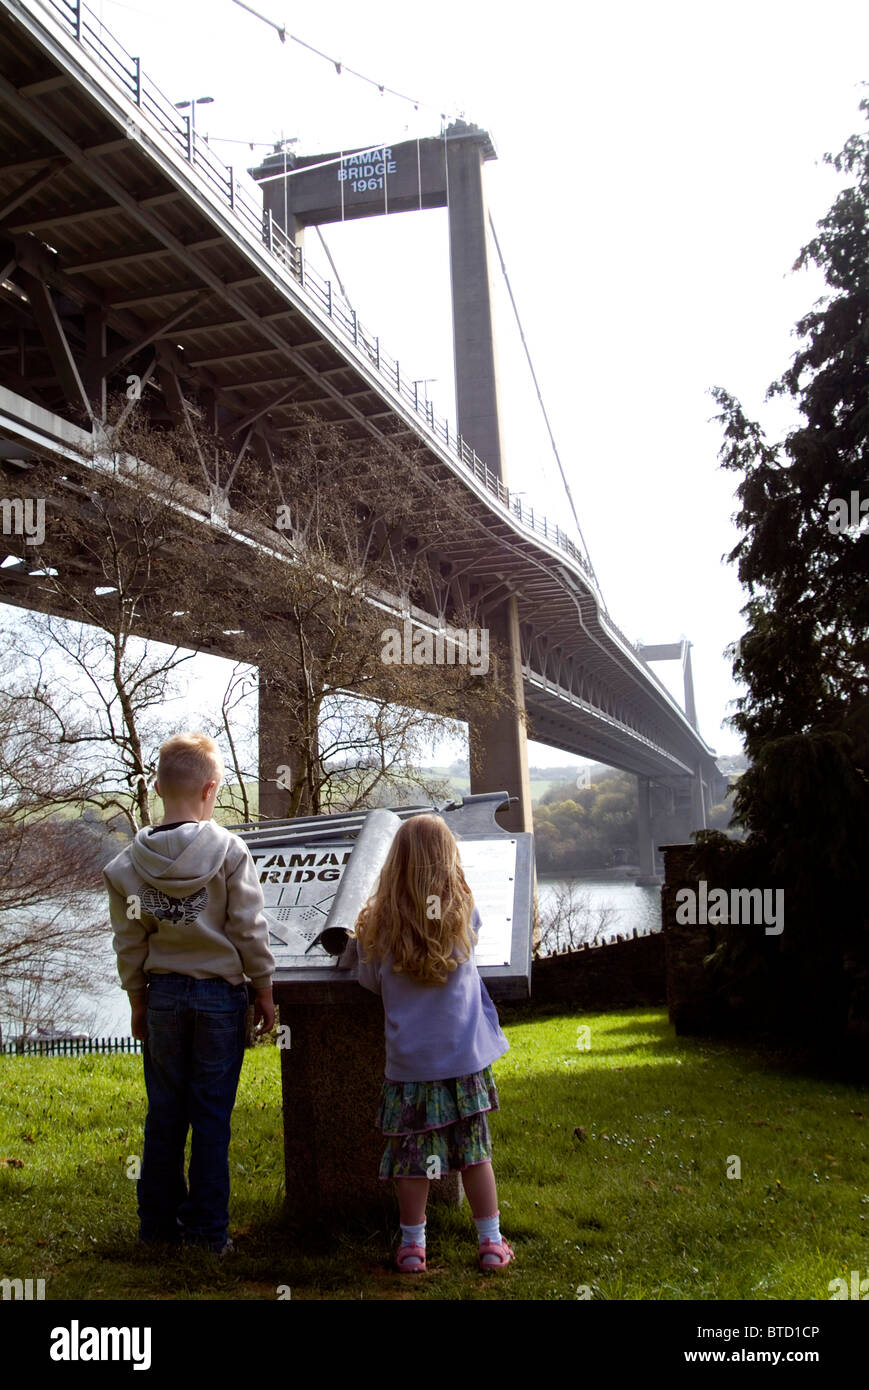 two children looking at sign for tamar bridge - Stock Image